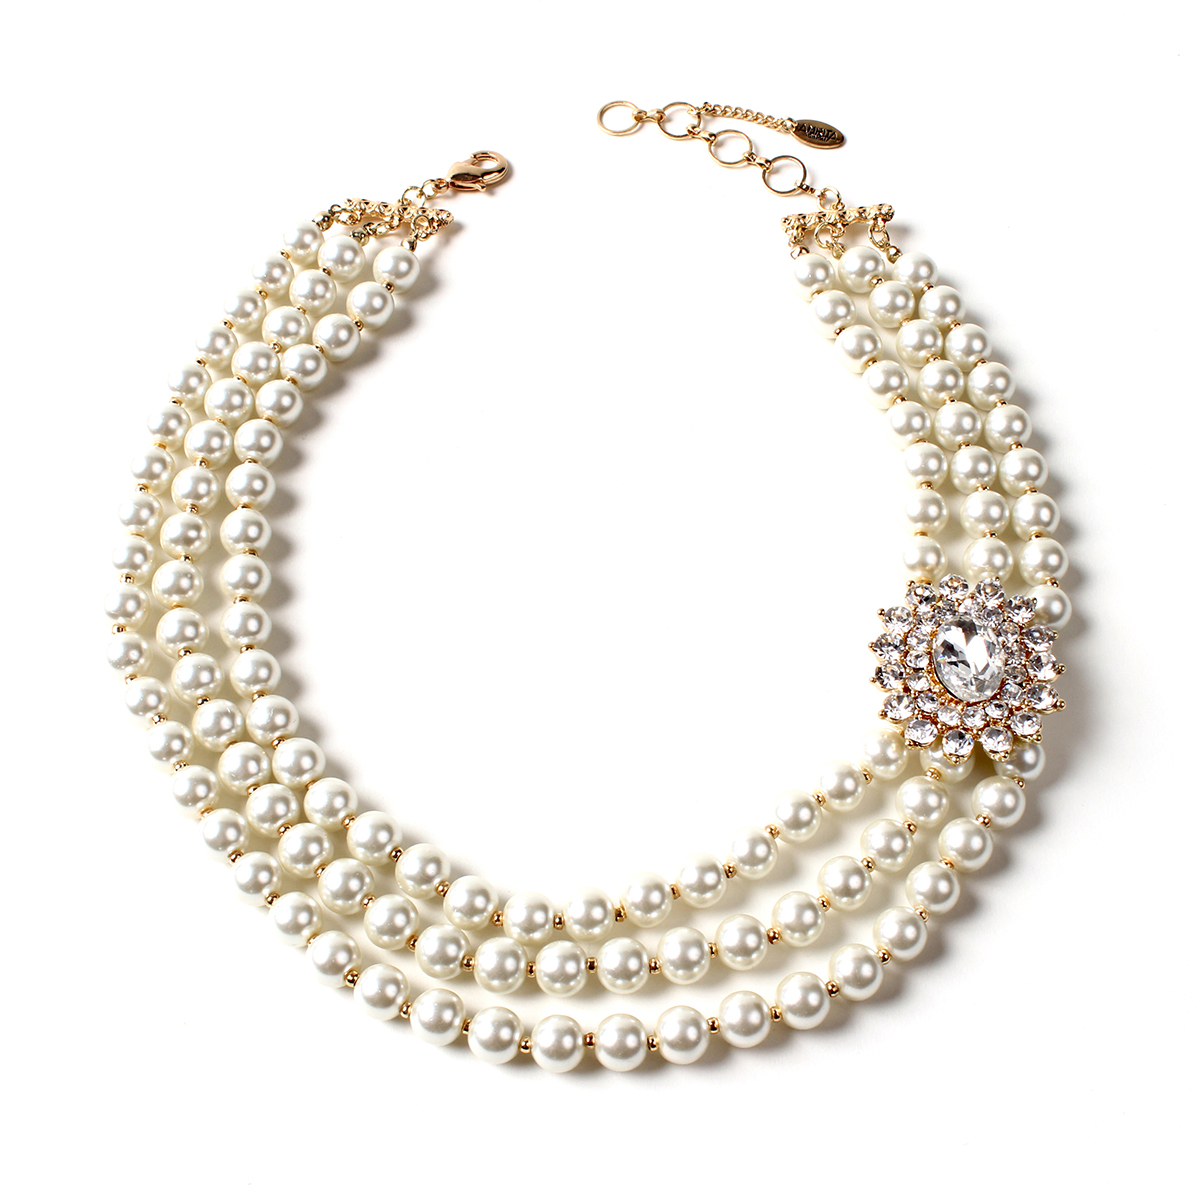 Pearl Necklace- The Elegance of Style